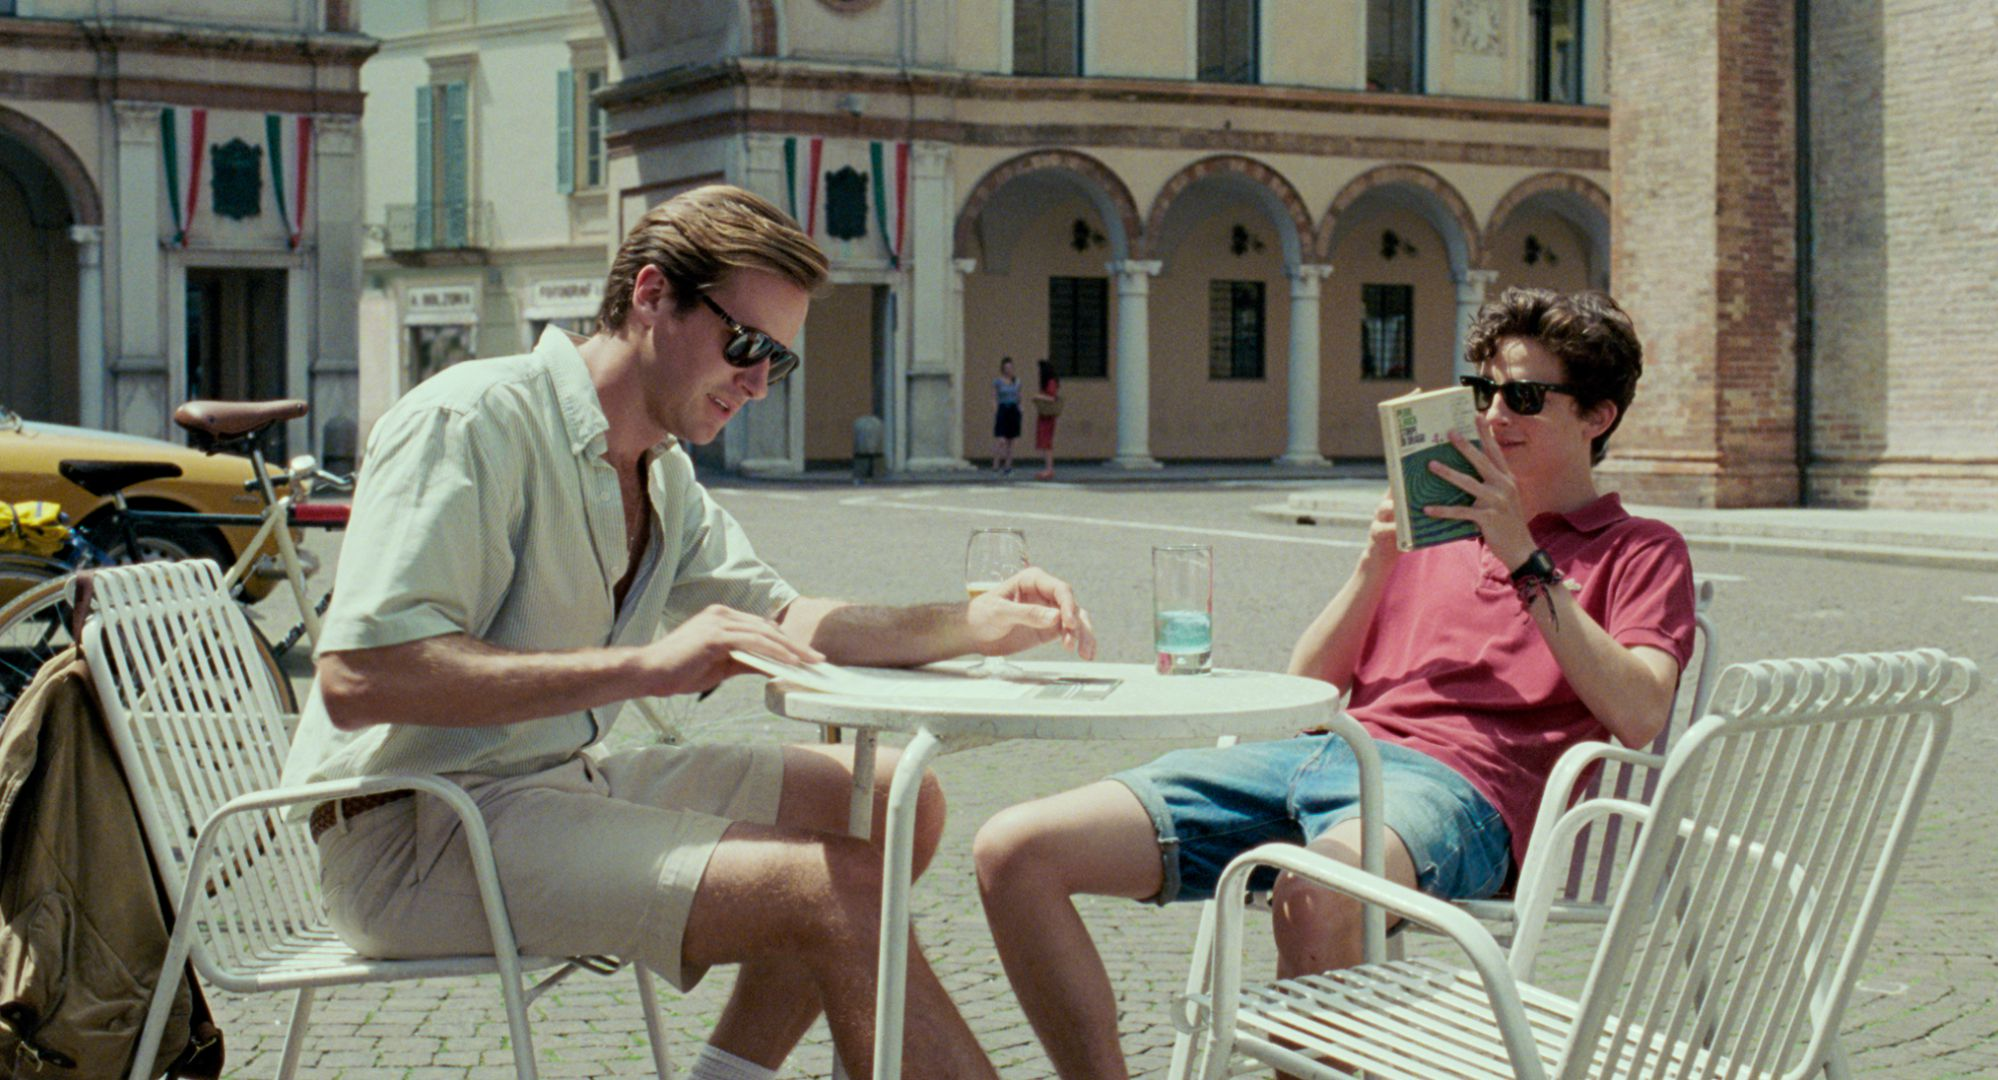 Oliver (Armie Hammer) and Elio (Timothée Chalamet) spend a day touring the nearby countryside.